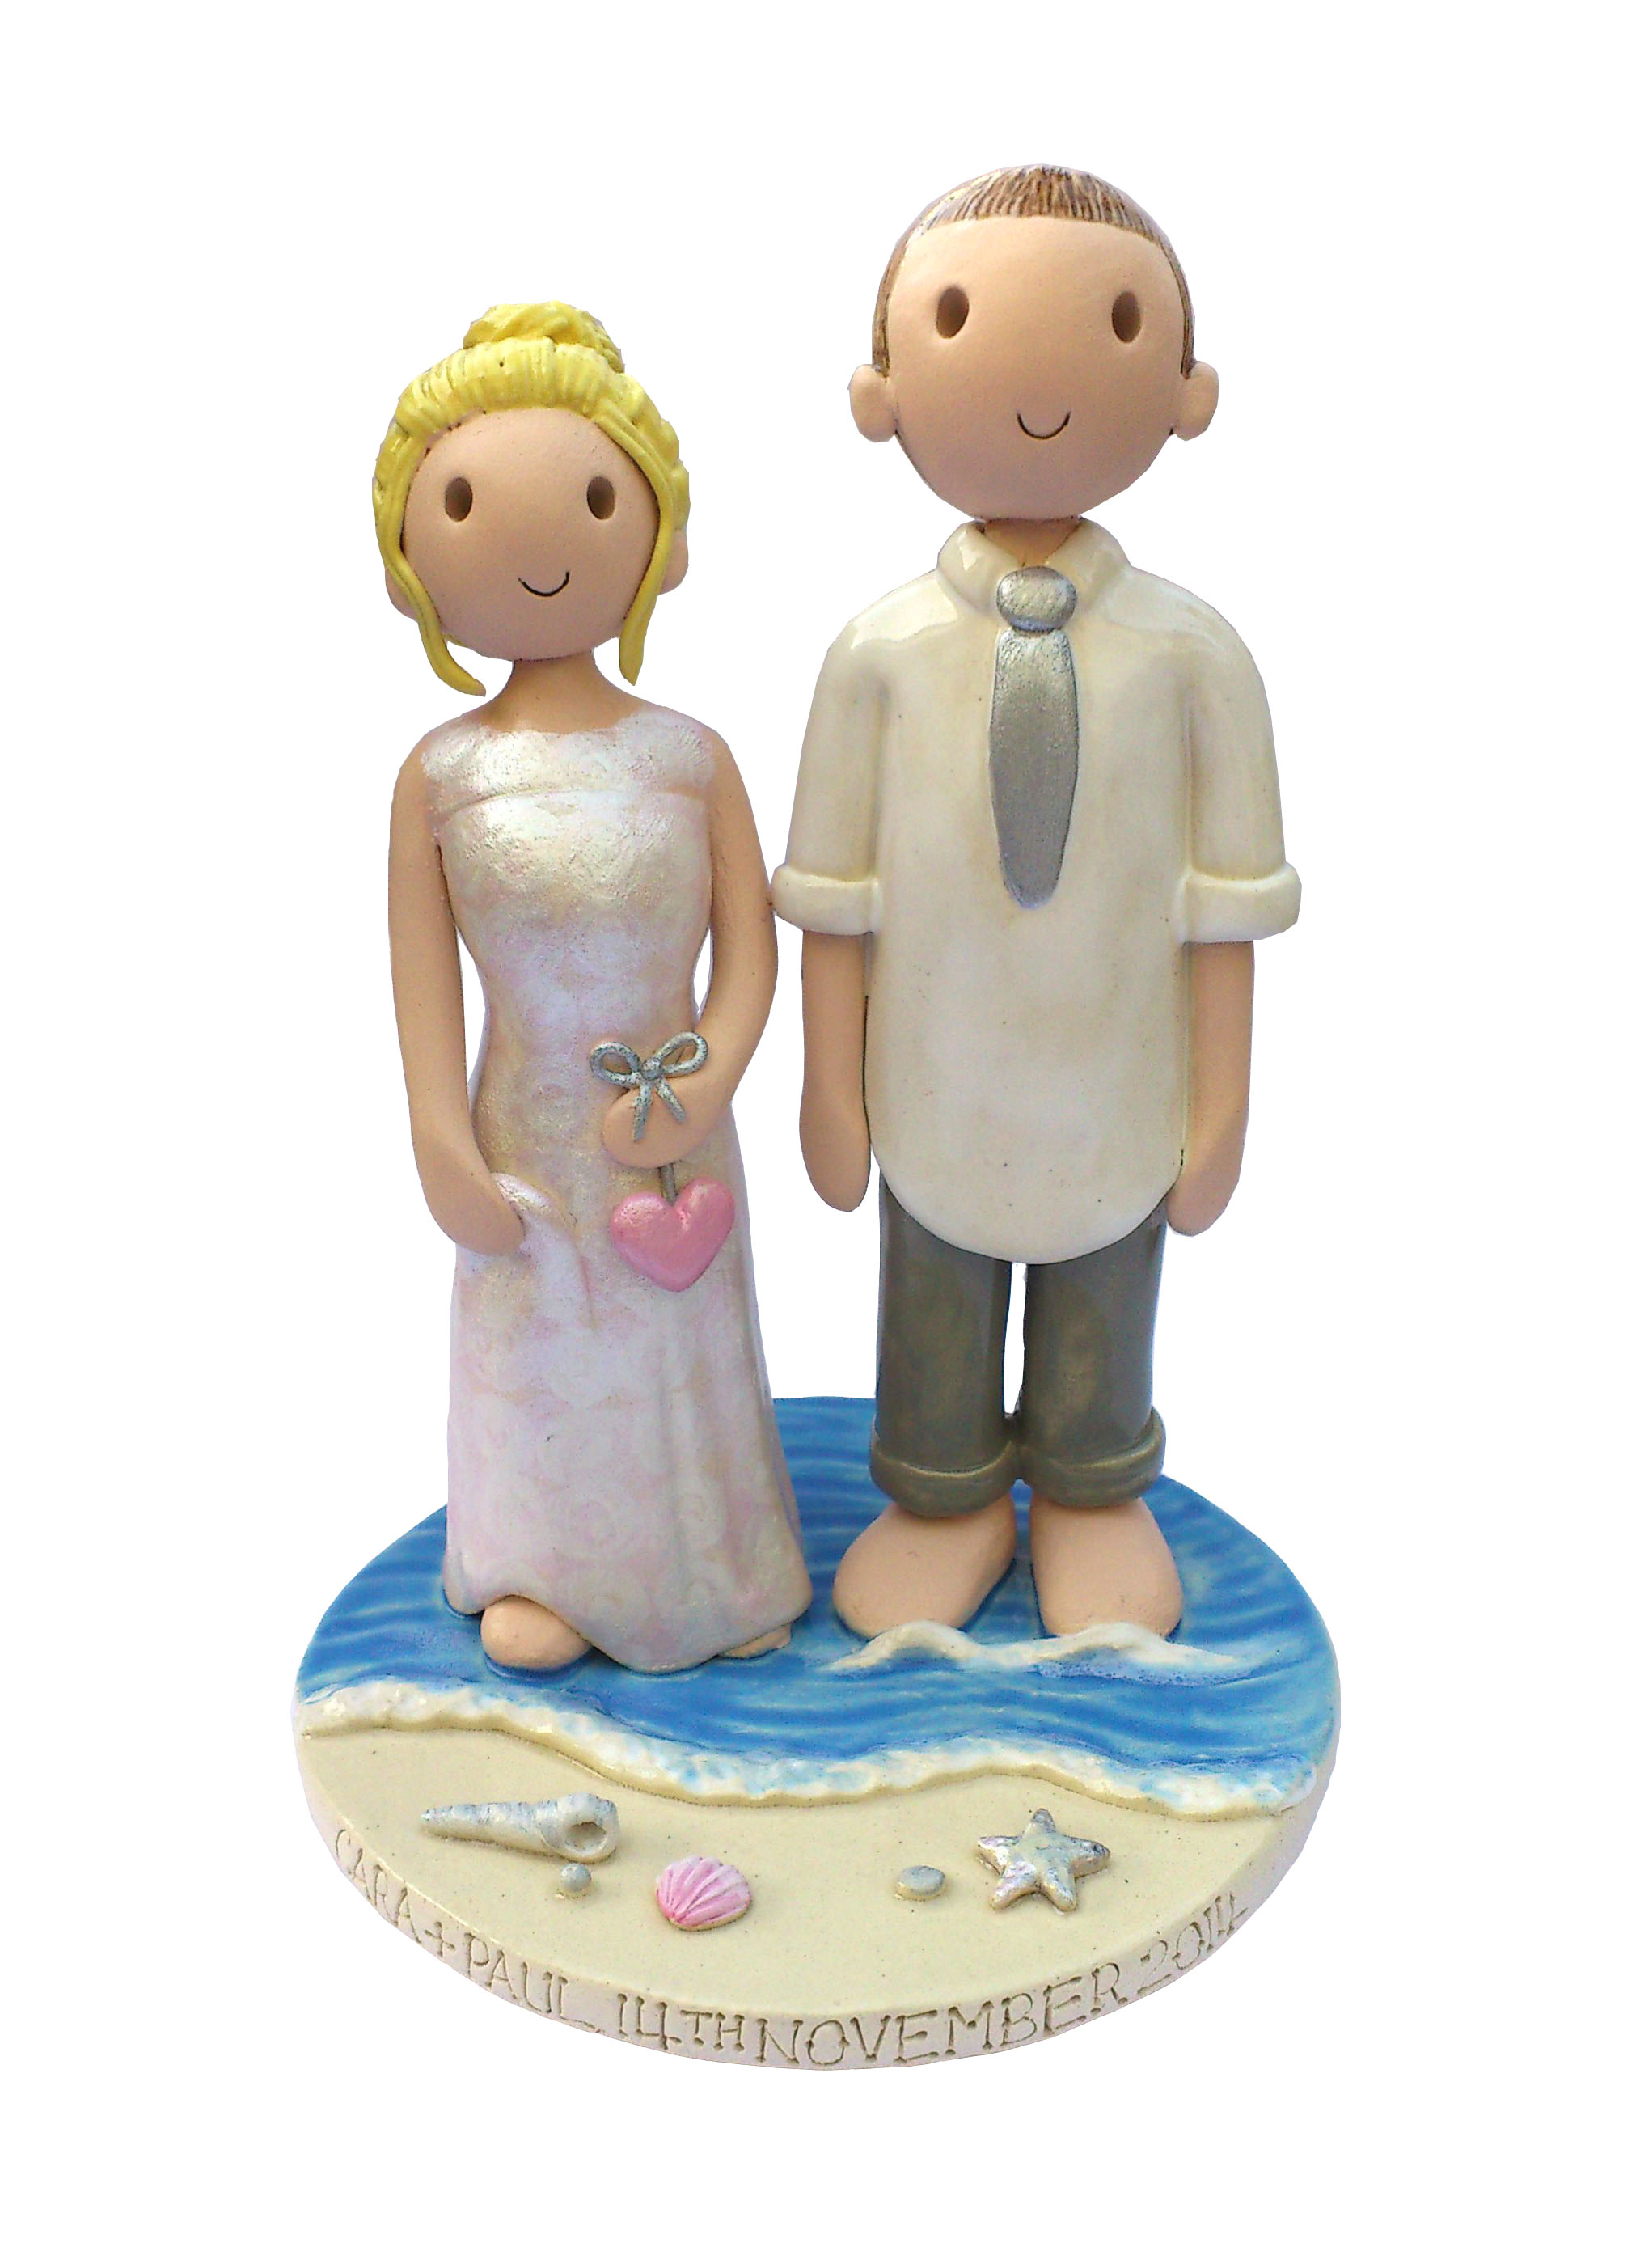 beach cake toppers wedding cake toppers gallery examples of toppers we 1533